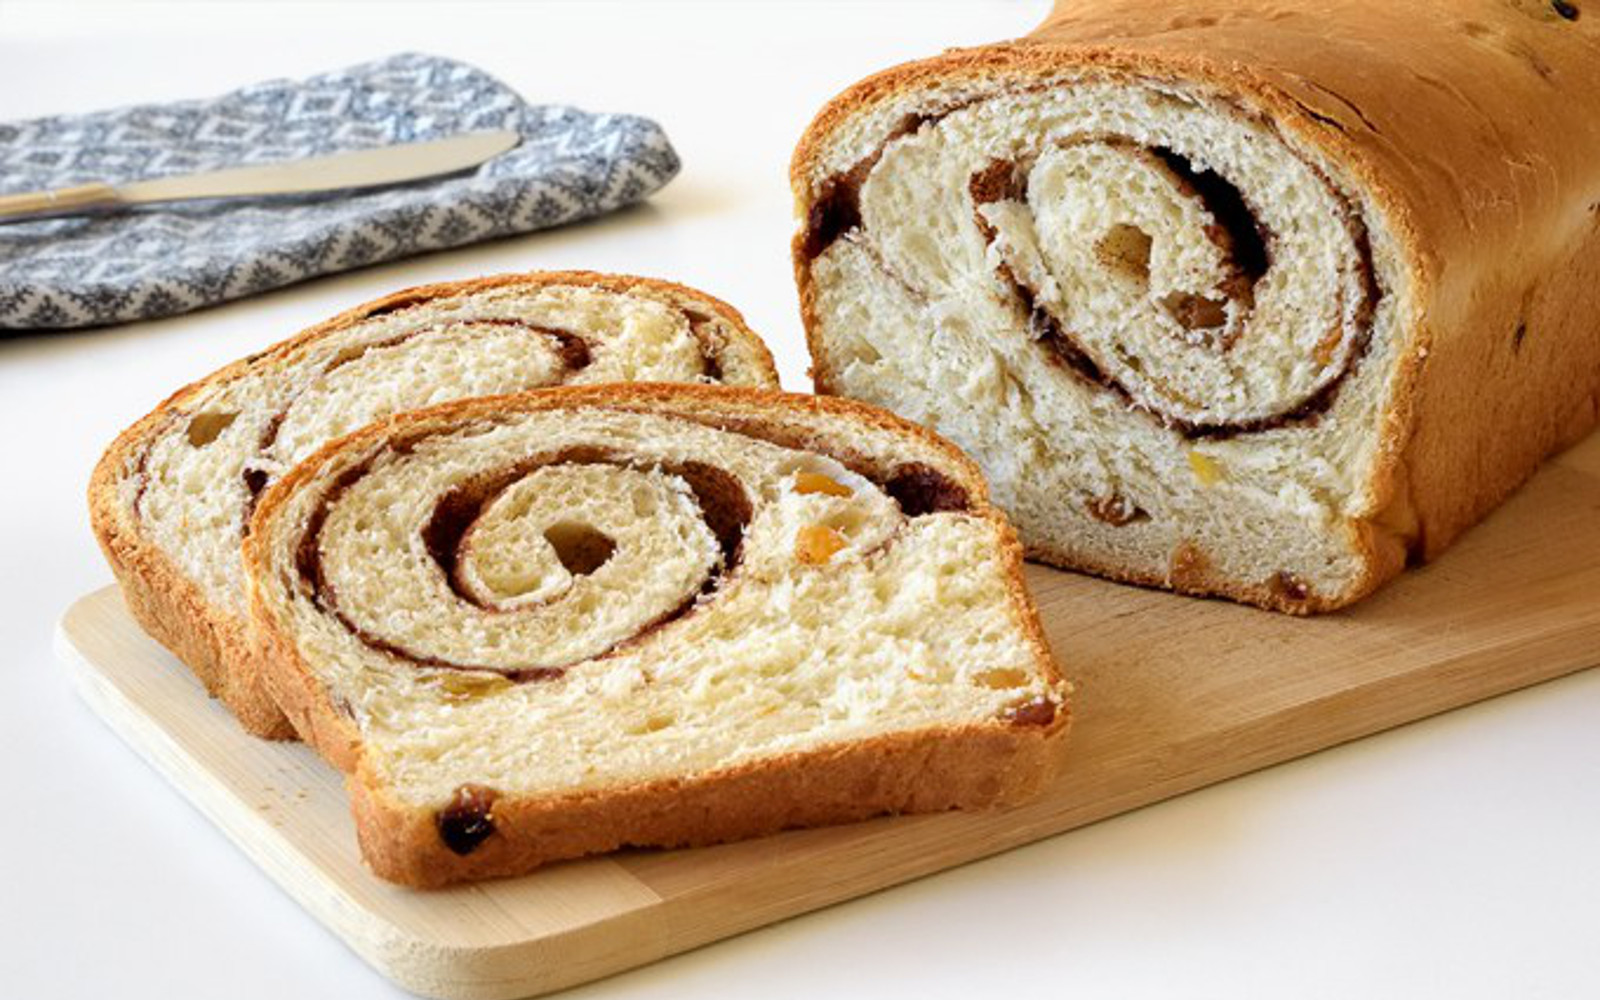 Cinnamon Raisin Swirl Bread Vegan One Green Planet